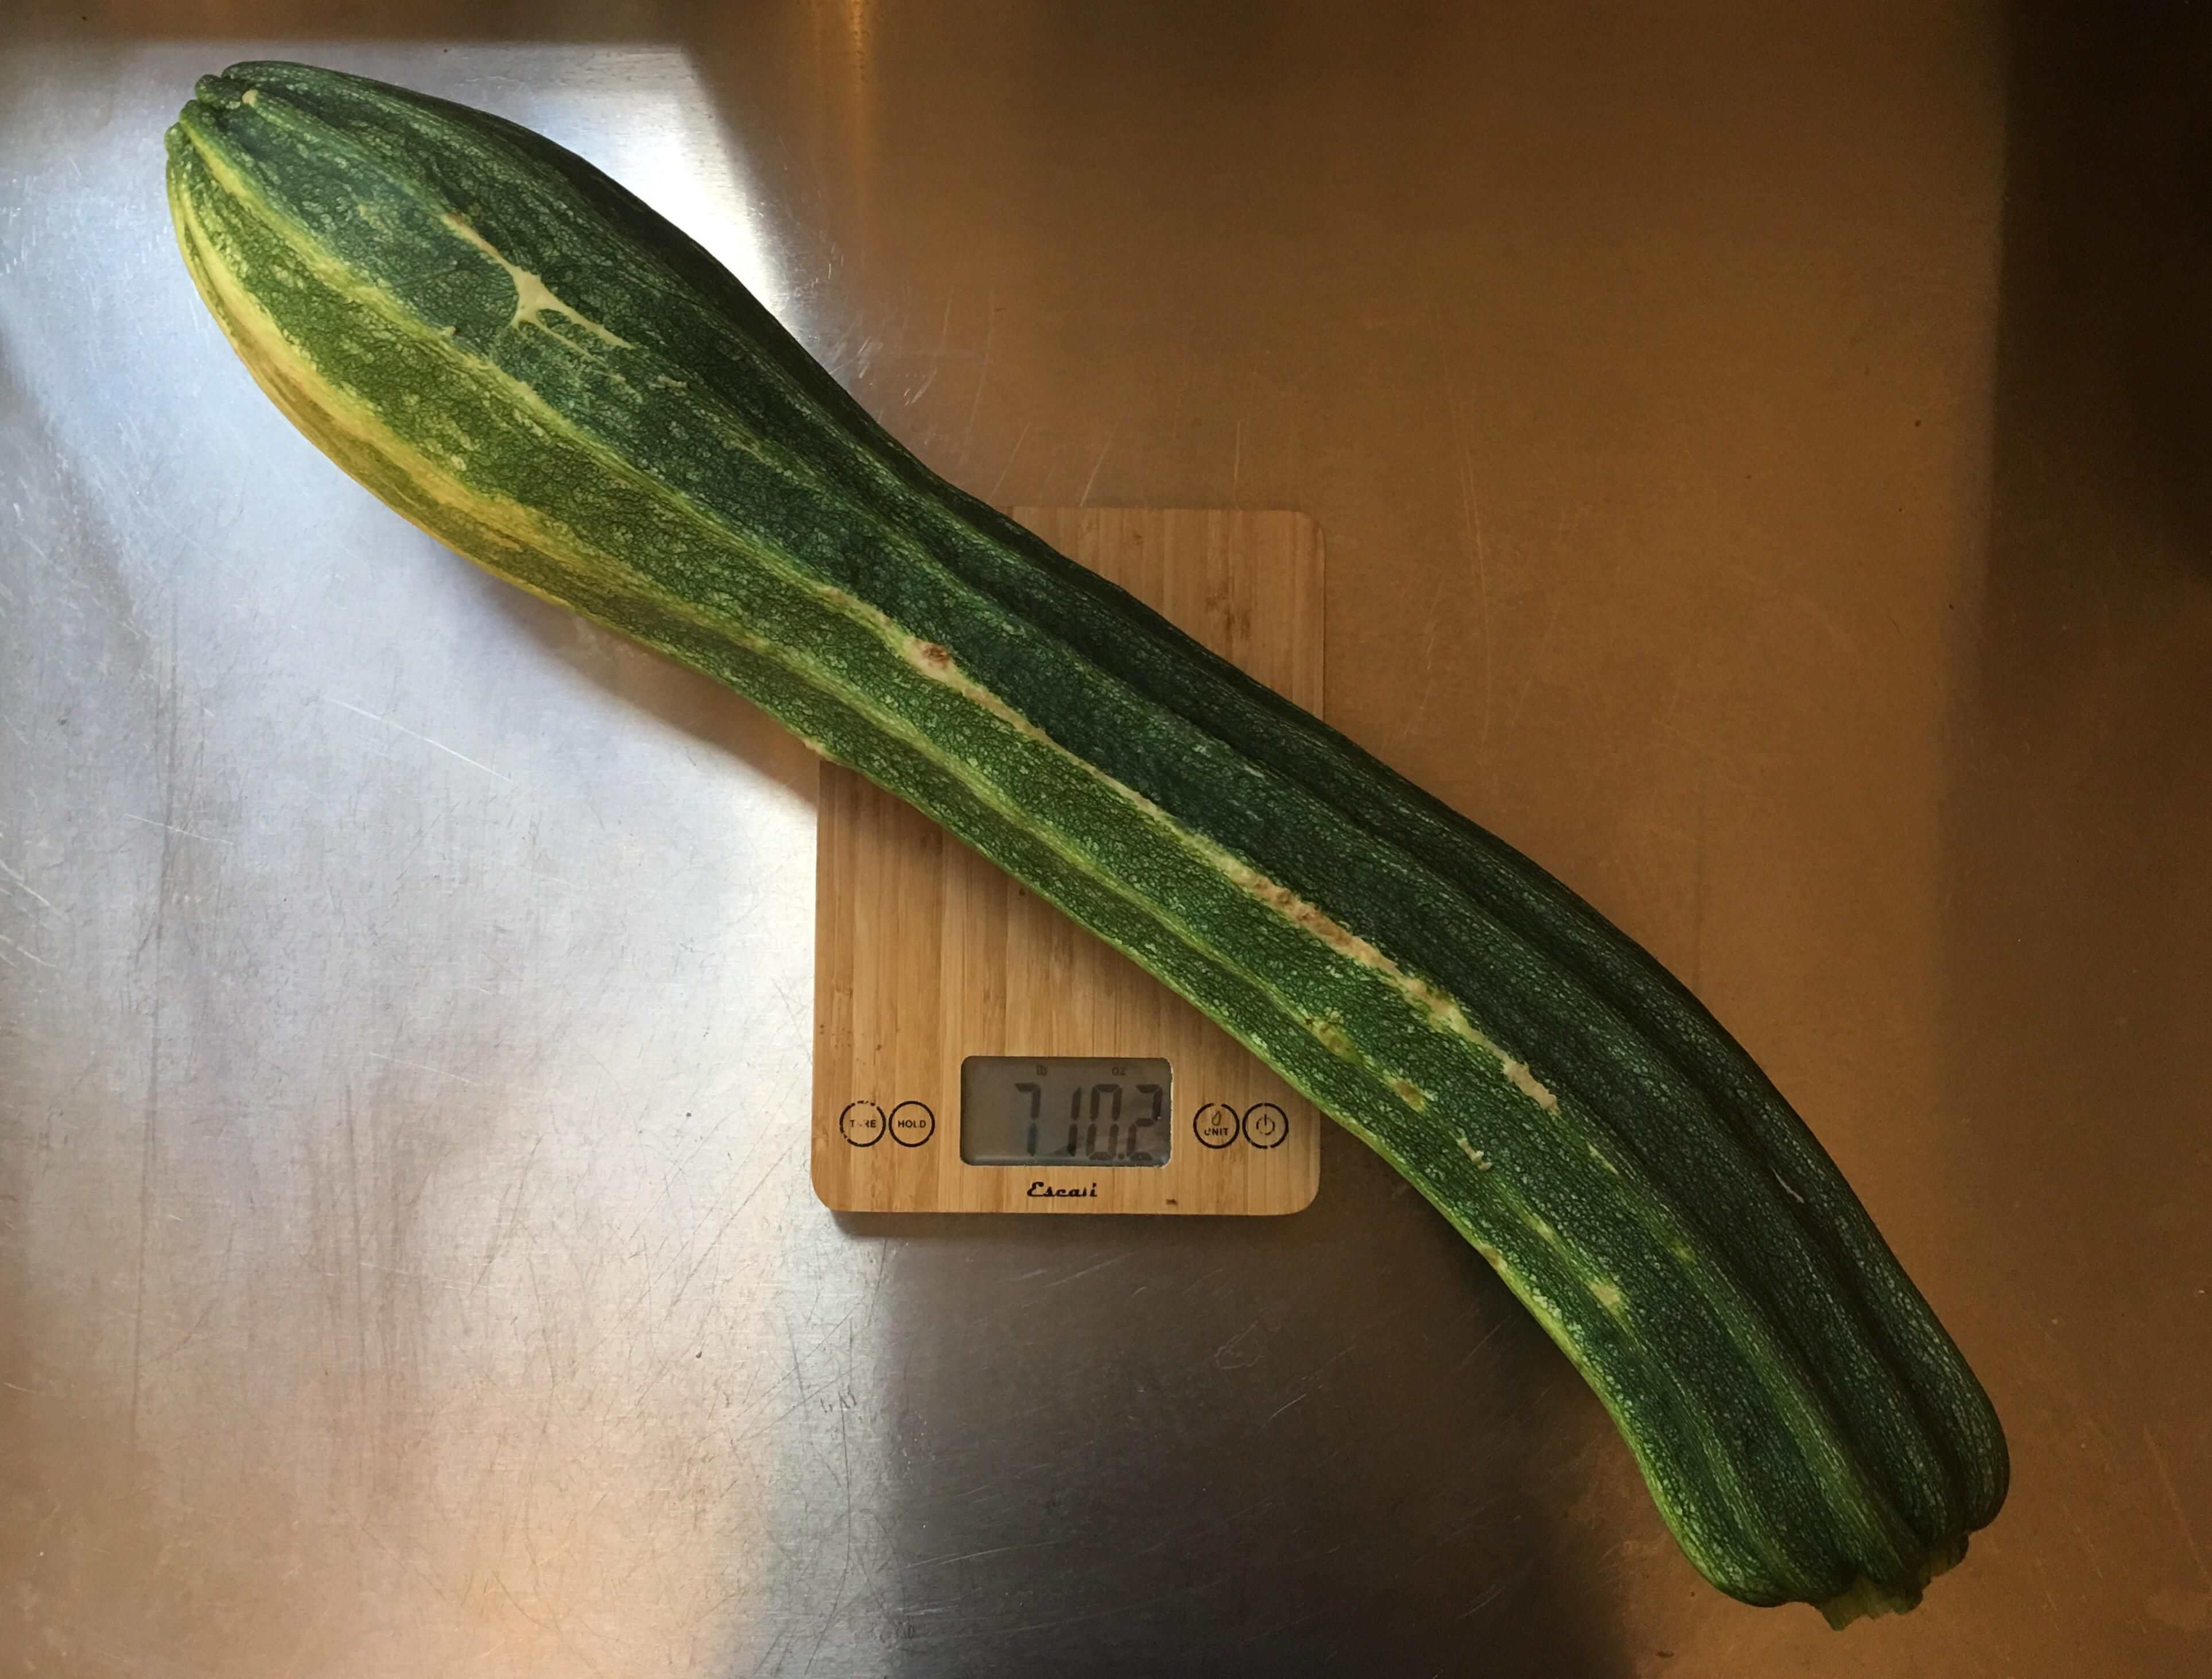 7 1/2 pound zucchini?! #gardening #garden #DIY #home #flowers #roses #nature #landscaping #horticulture